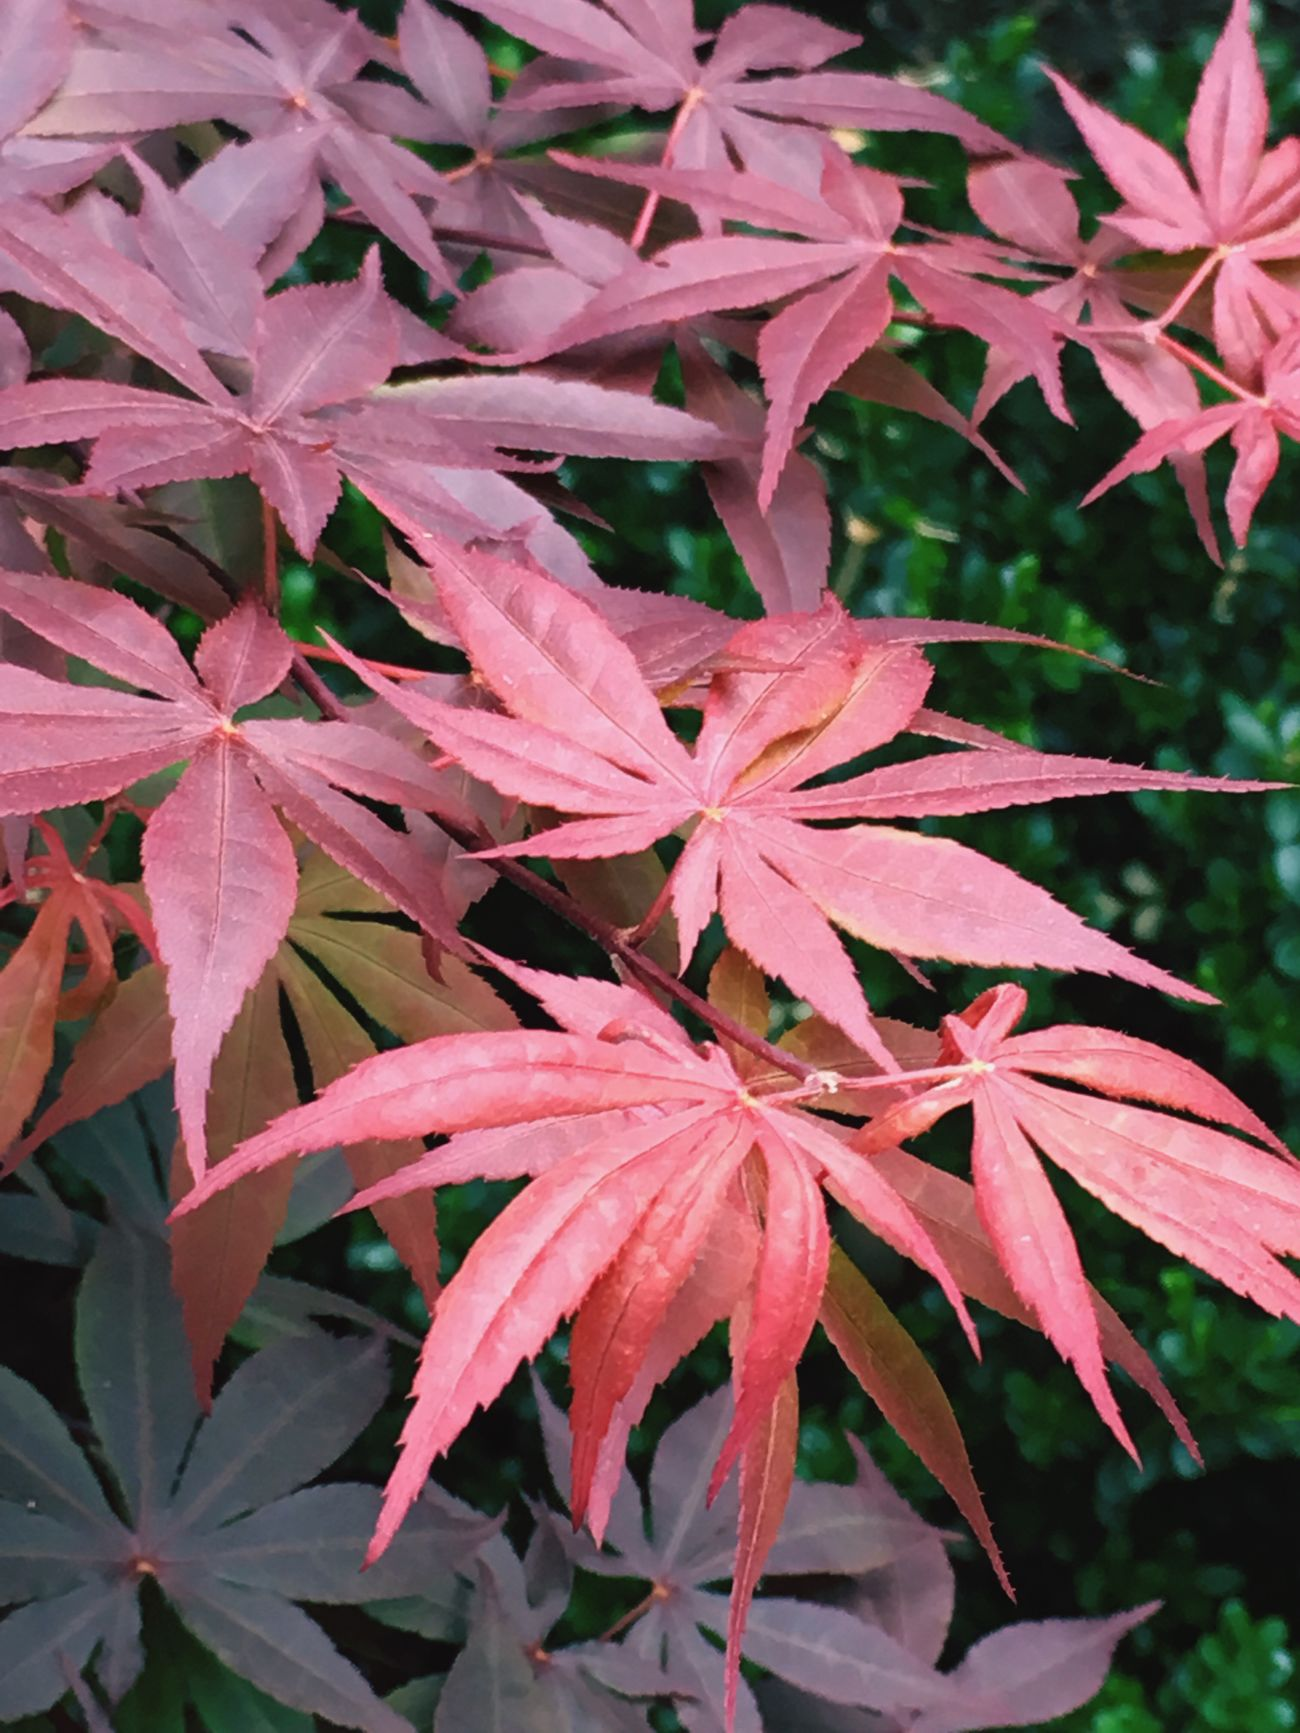 Plant Close-up red Growth Leaf Beauty In Nature Nature Outdoors Lovely serene tranquility